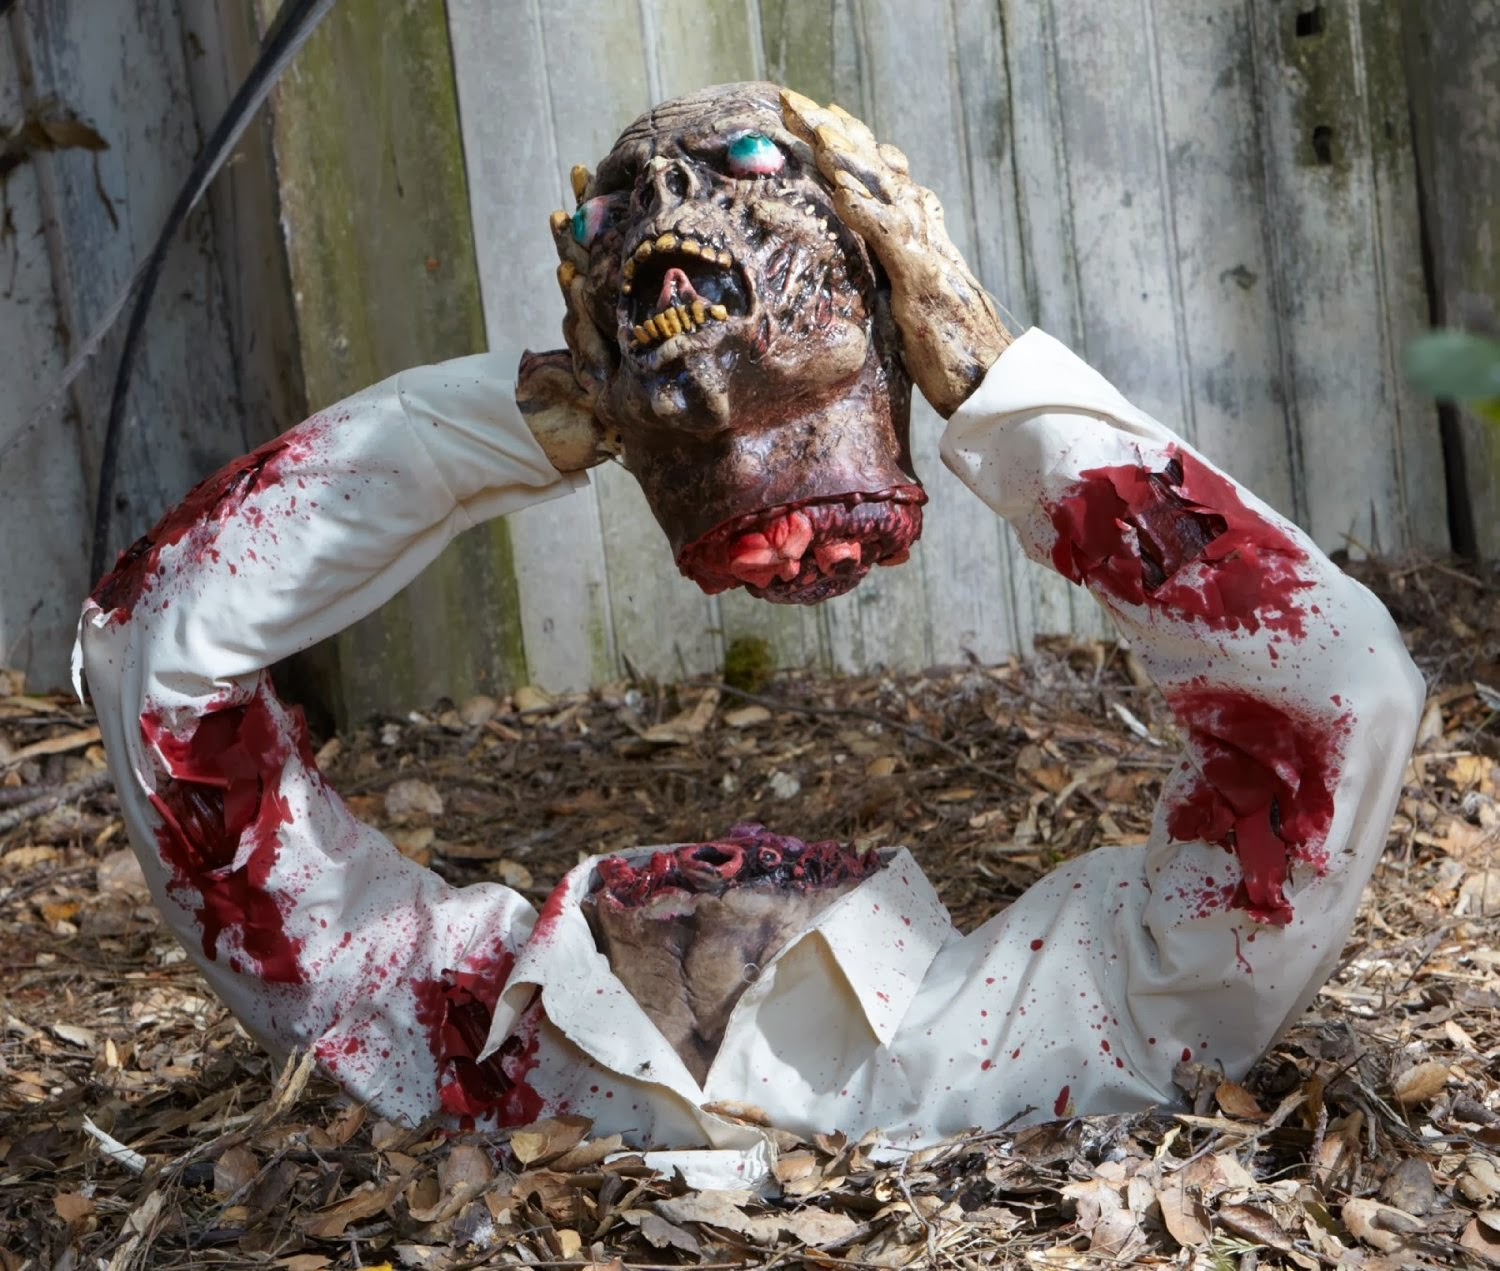 Matthias in den USA: November 2013 - Horror Props